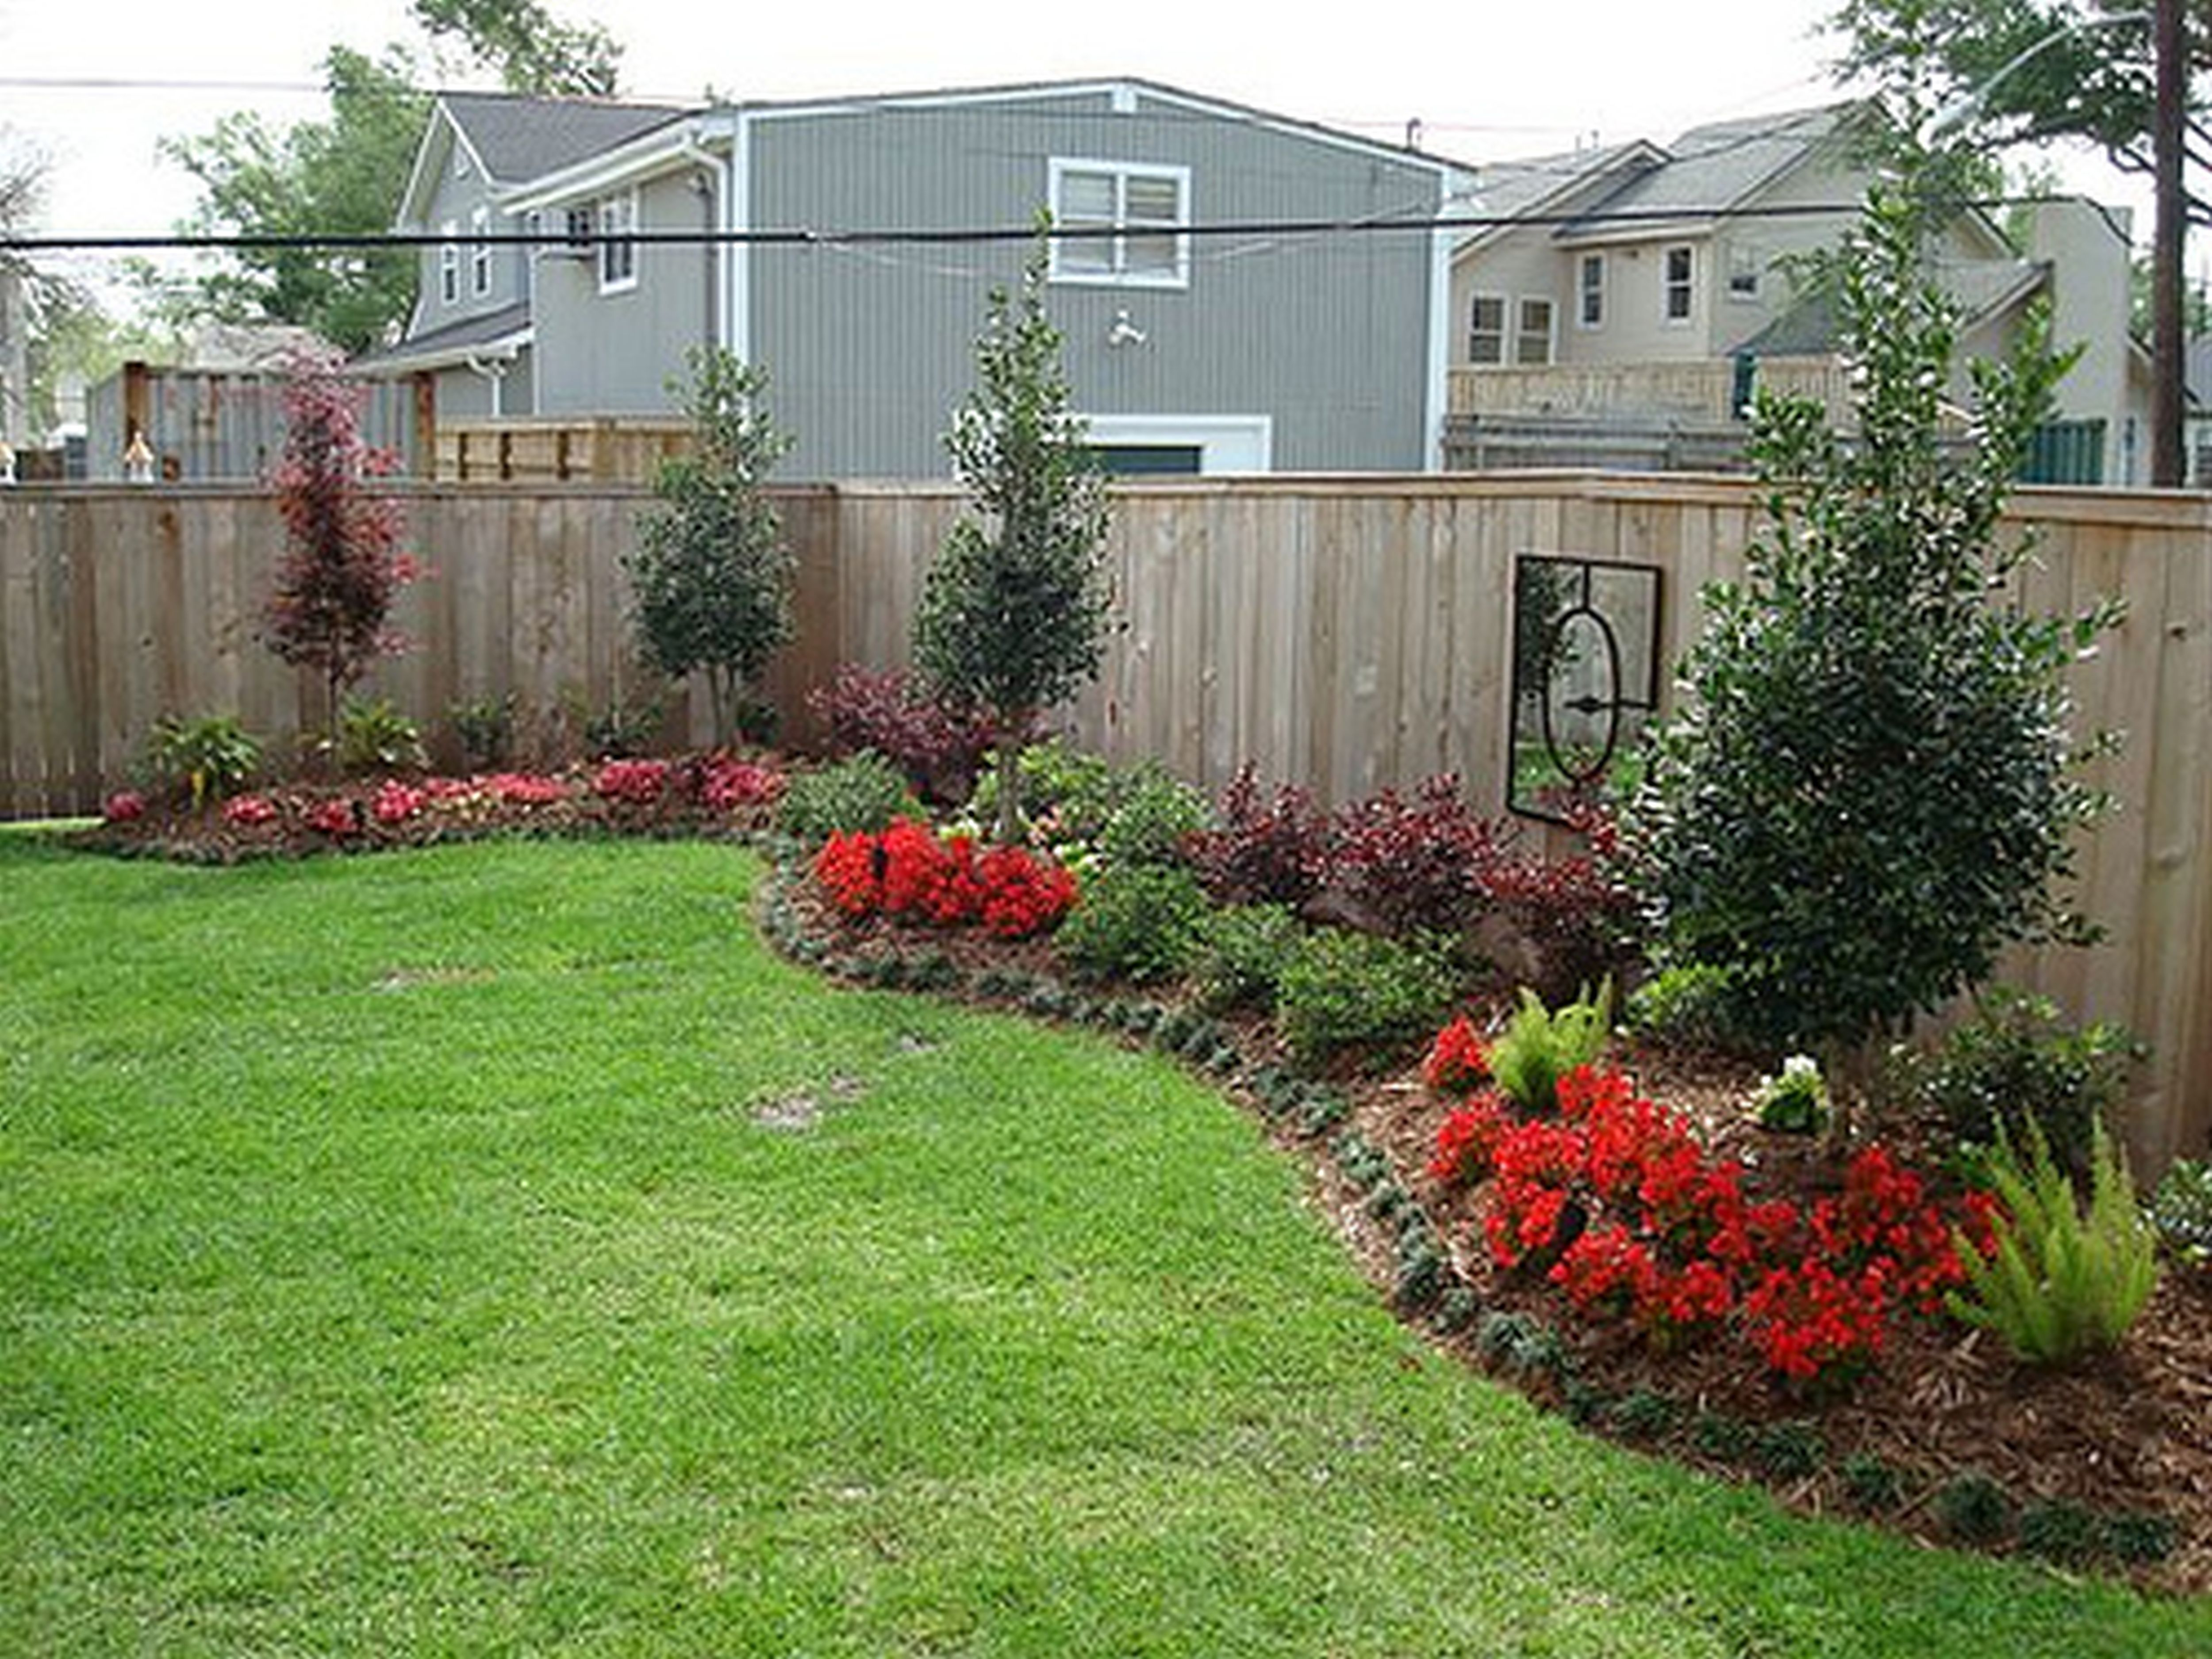 Backyard Landscape Designs With Beautiful Design Ideas Rimviewinn within 10 Clever Initiatives of How to Makeover Backyard Garden Designs And Ideas